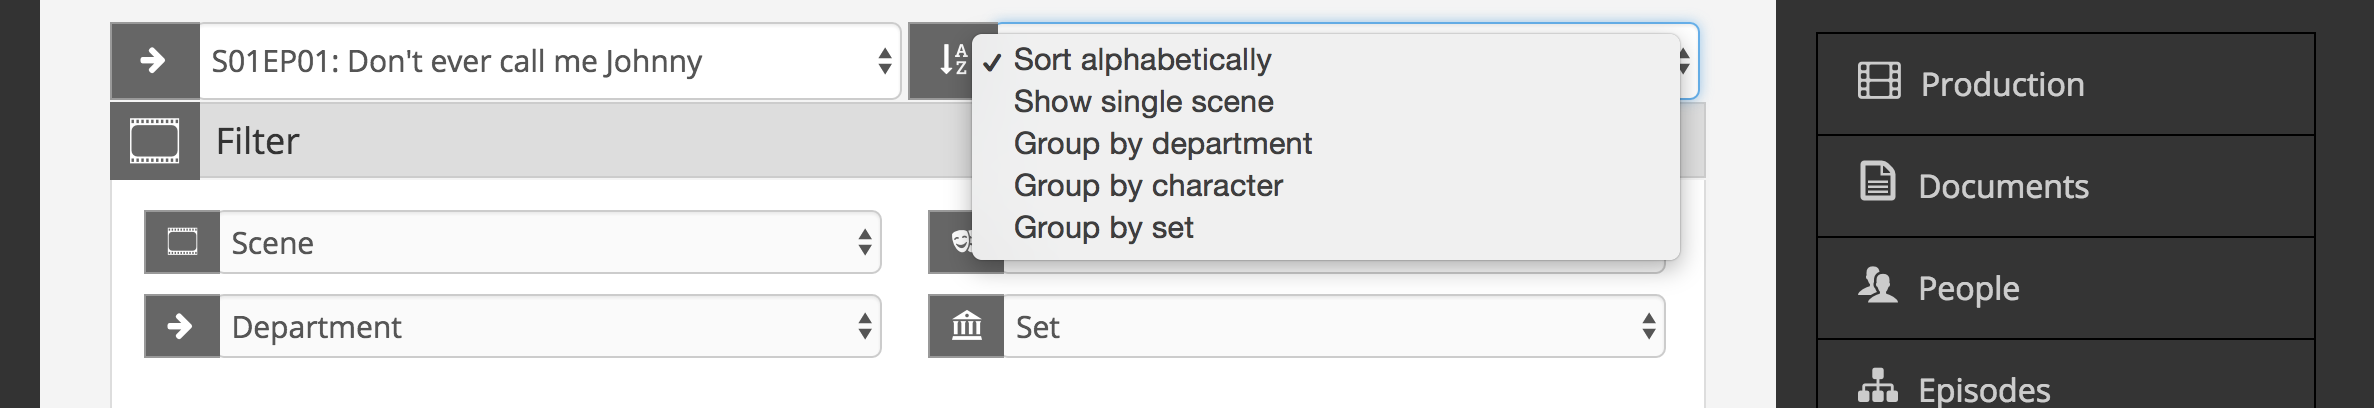 Sort and filter scene items